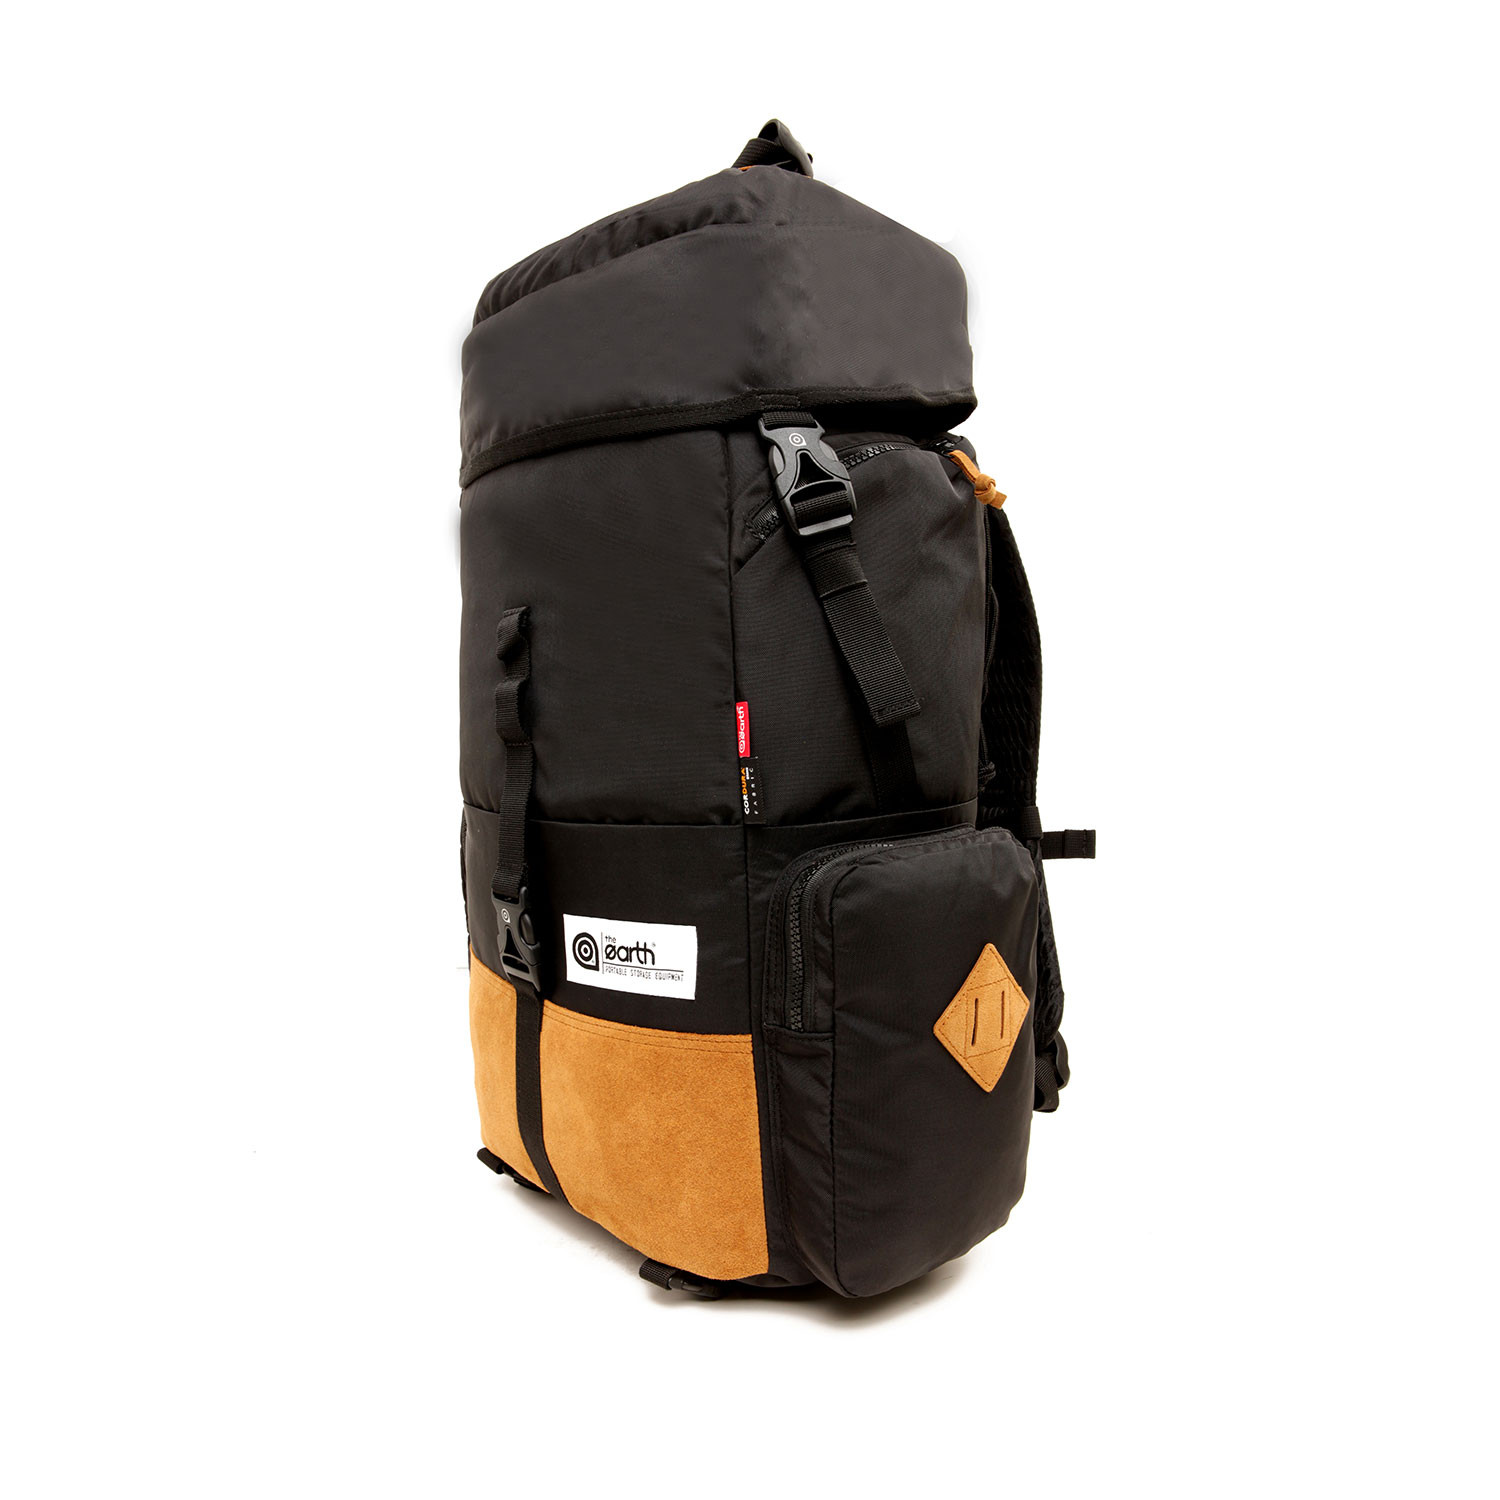 The Earth Backpack Check Now Blog National Geographic 5738 Large Khaki Rucksack